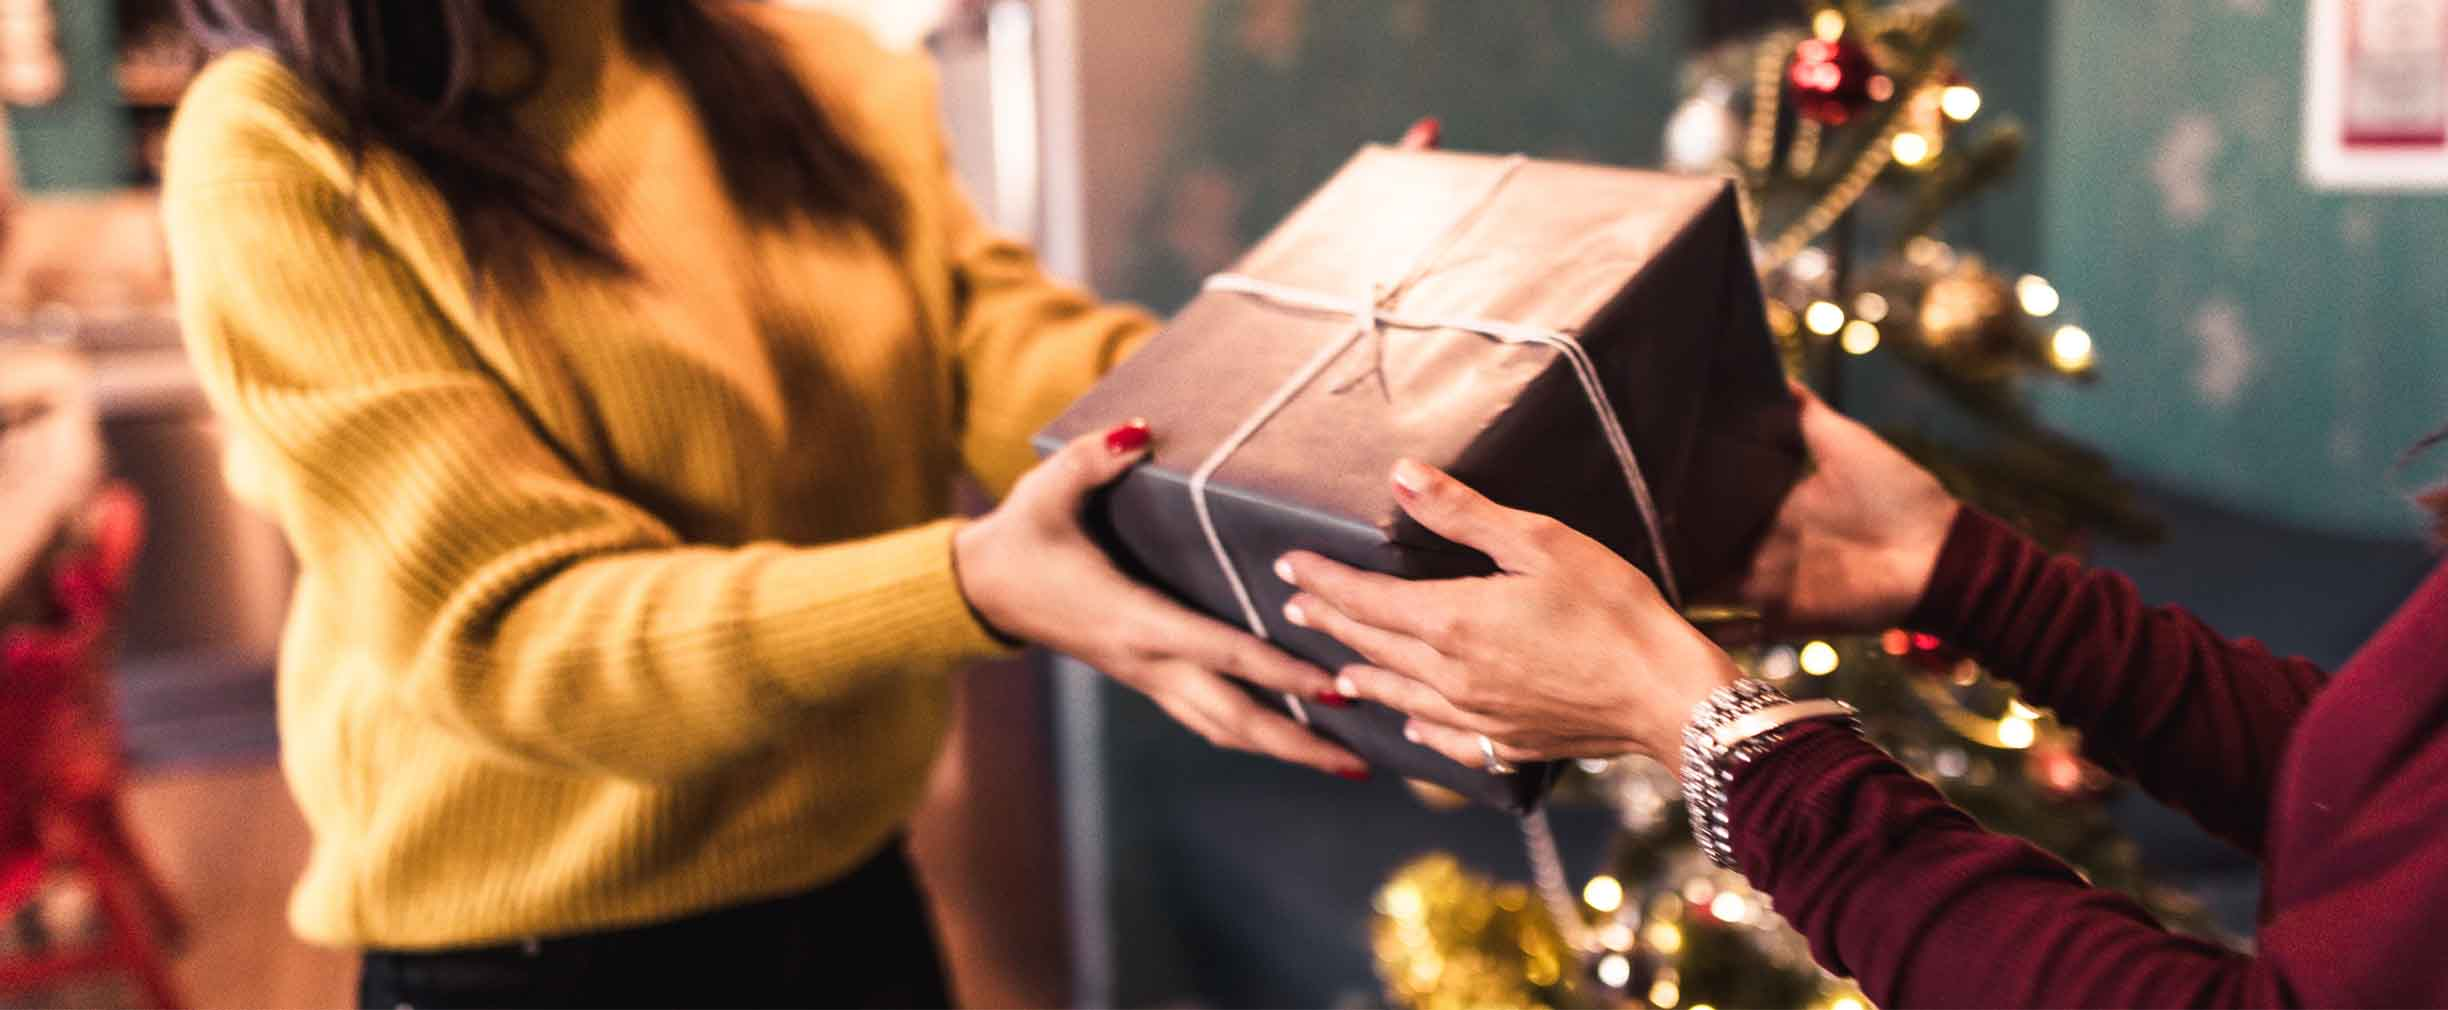 young woman reaching out to receive a Christmas gift from a friend